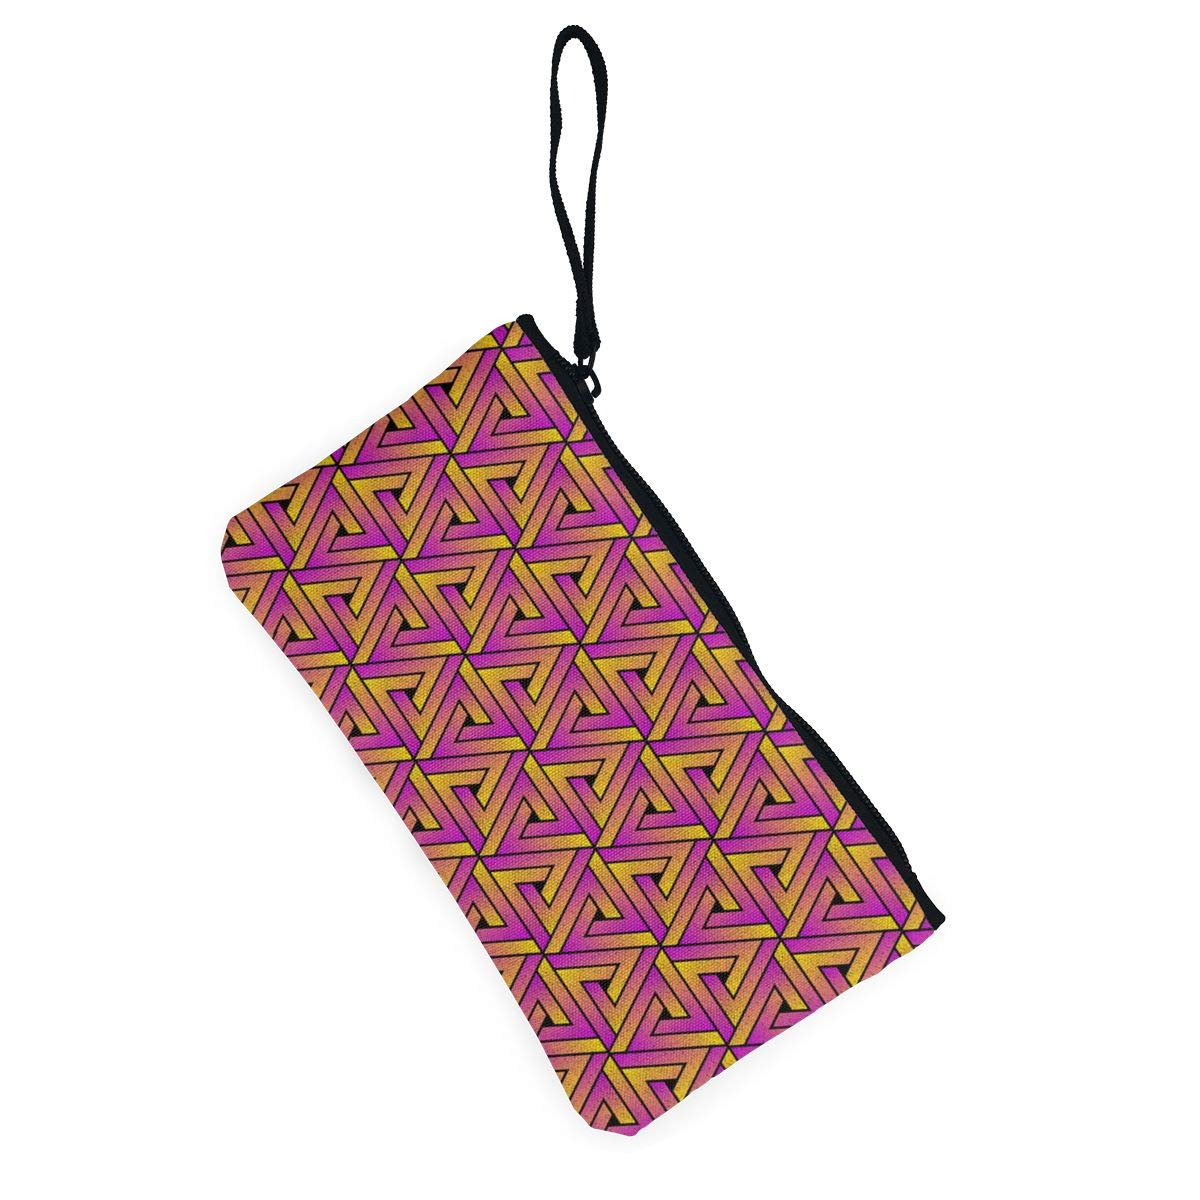 Key Triangles Pattern Canvas Change Coin Purse Small Cute Change Cash Bag With Zip